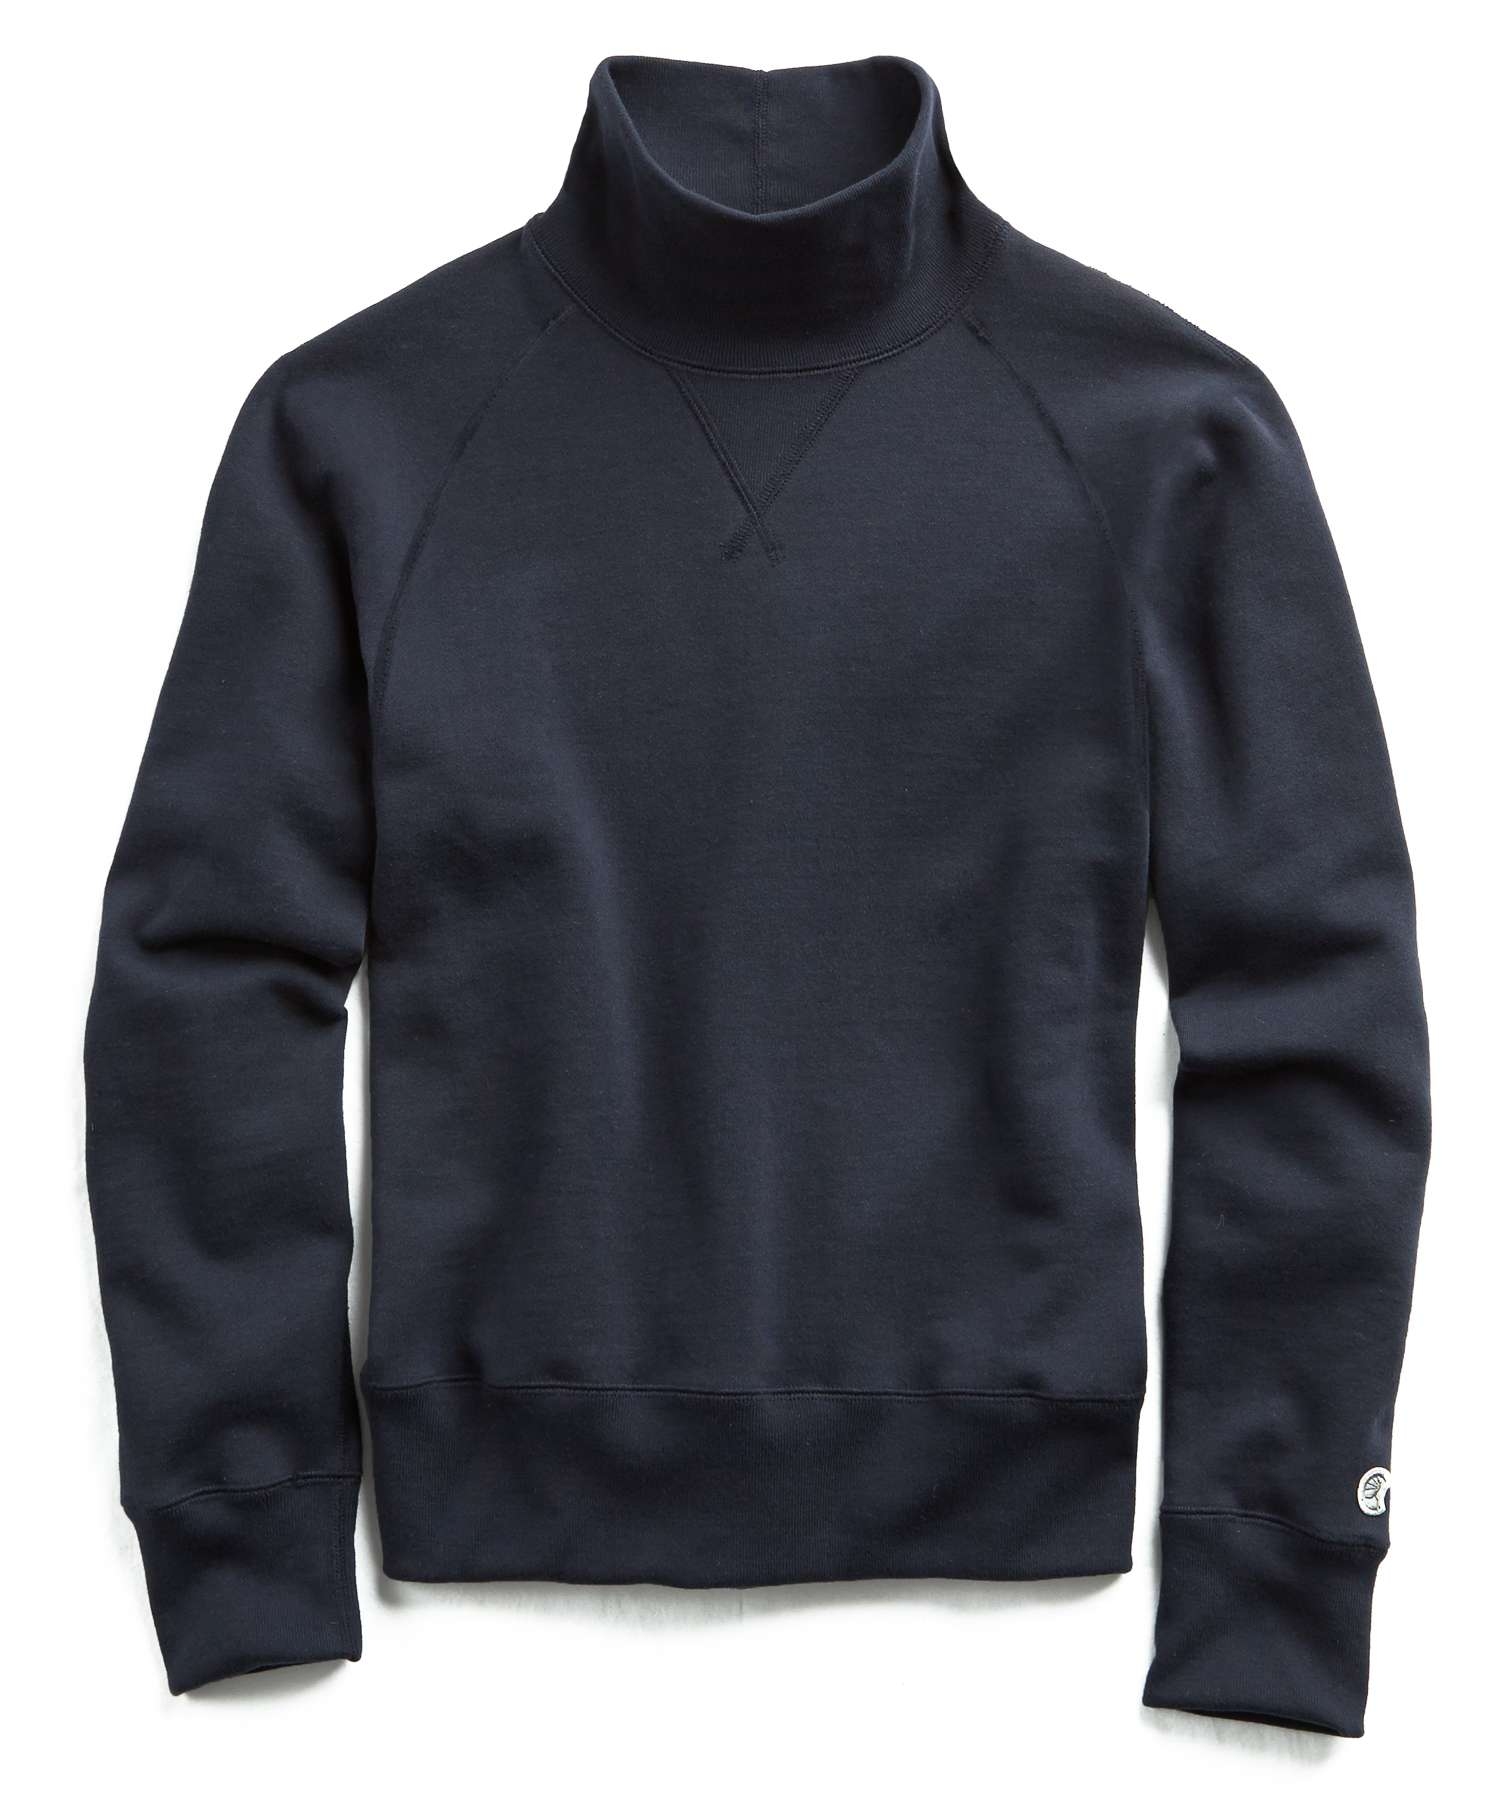 Fleece Turtleneck Sweatshirt in Navy